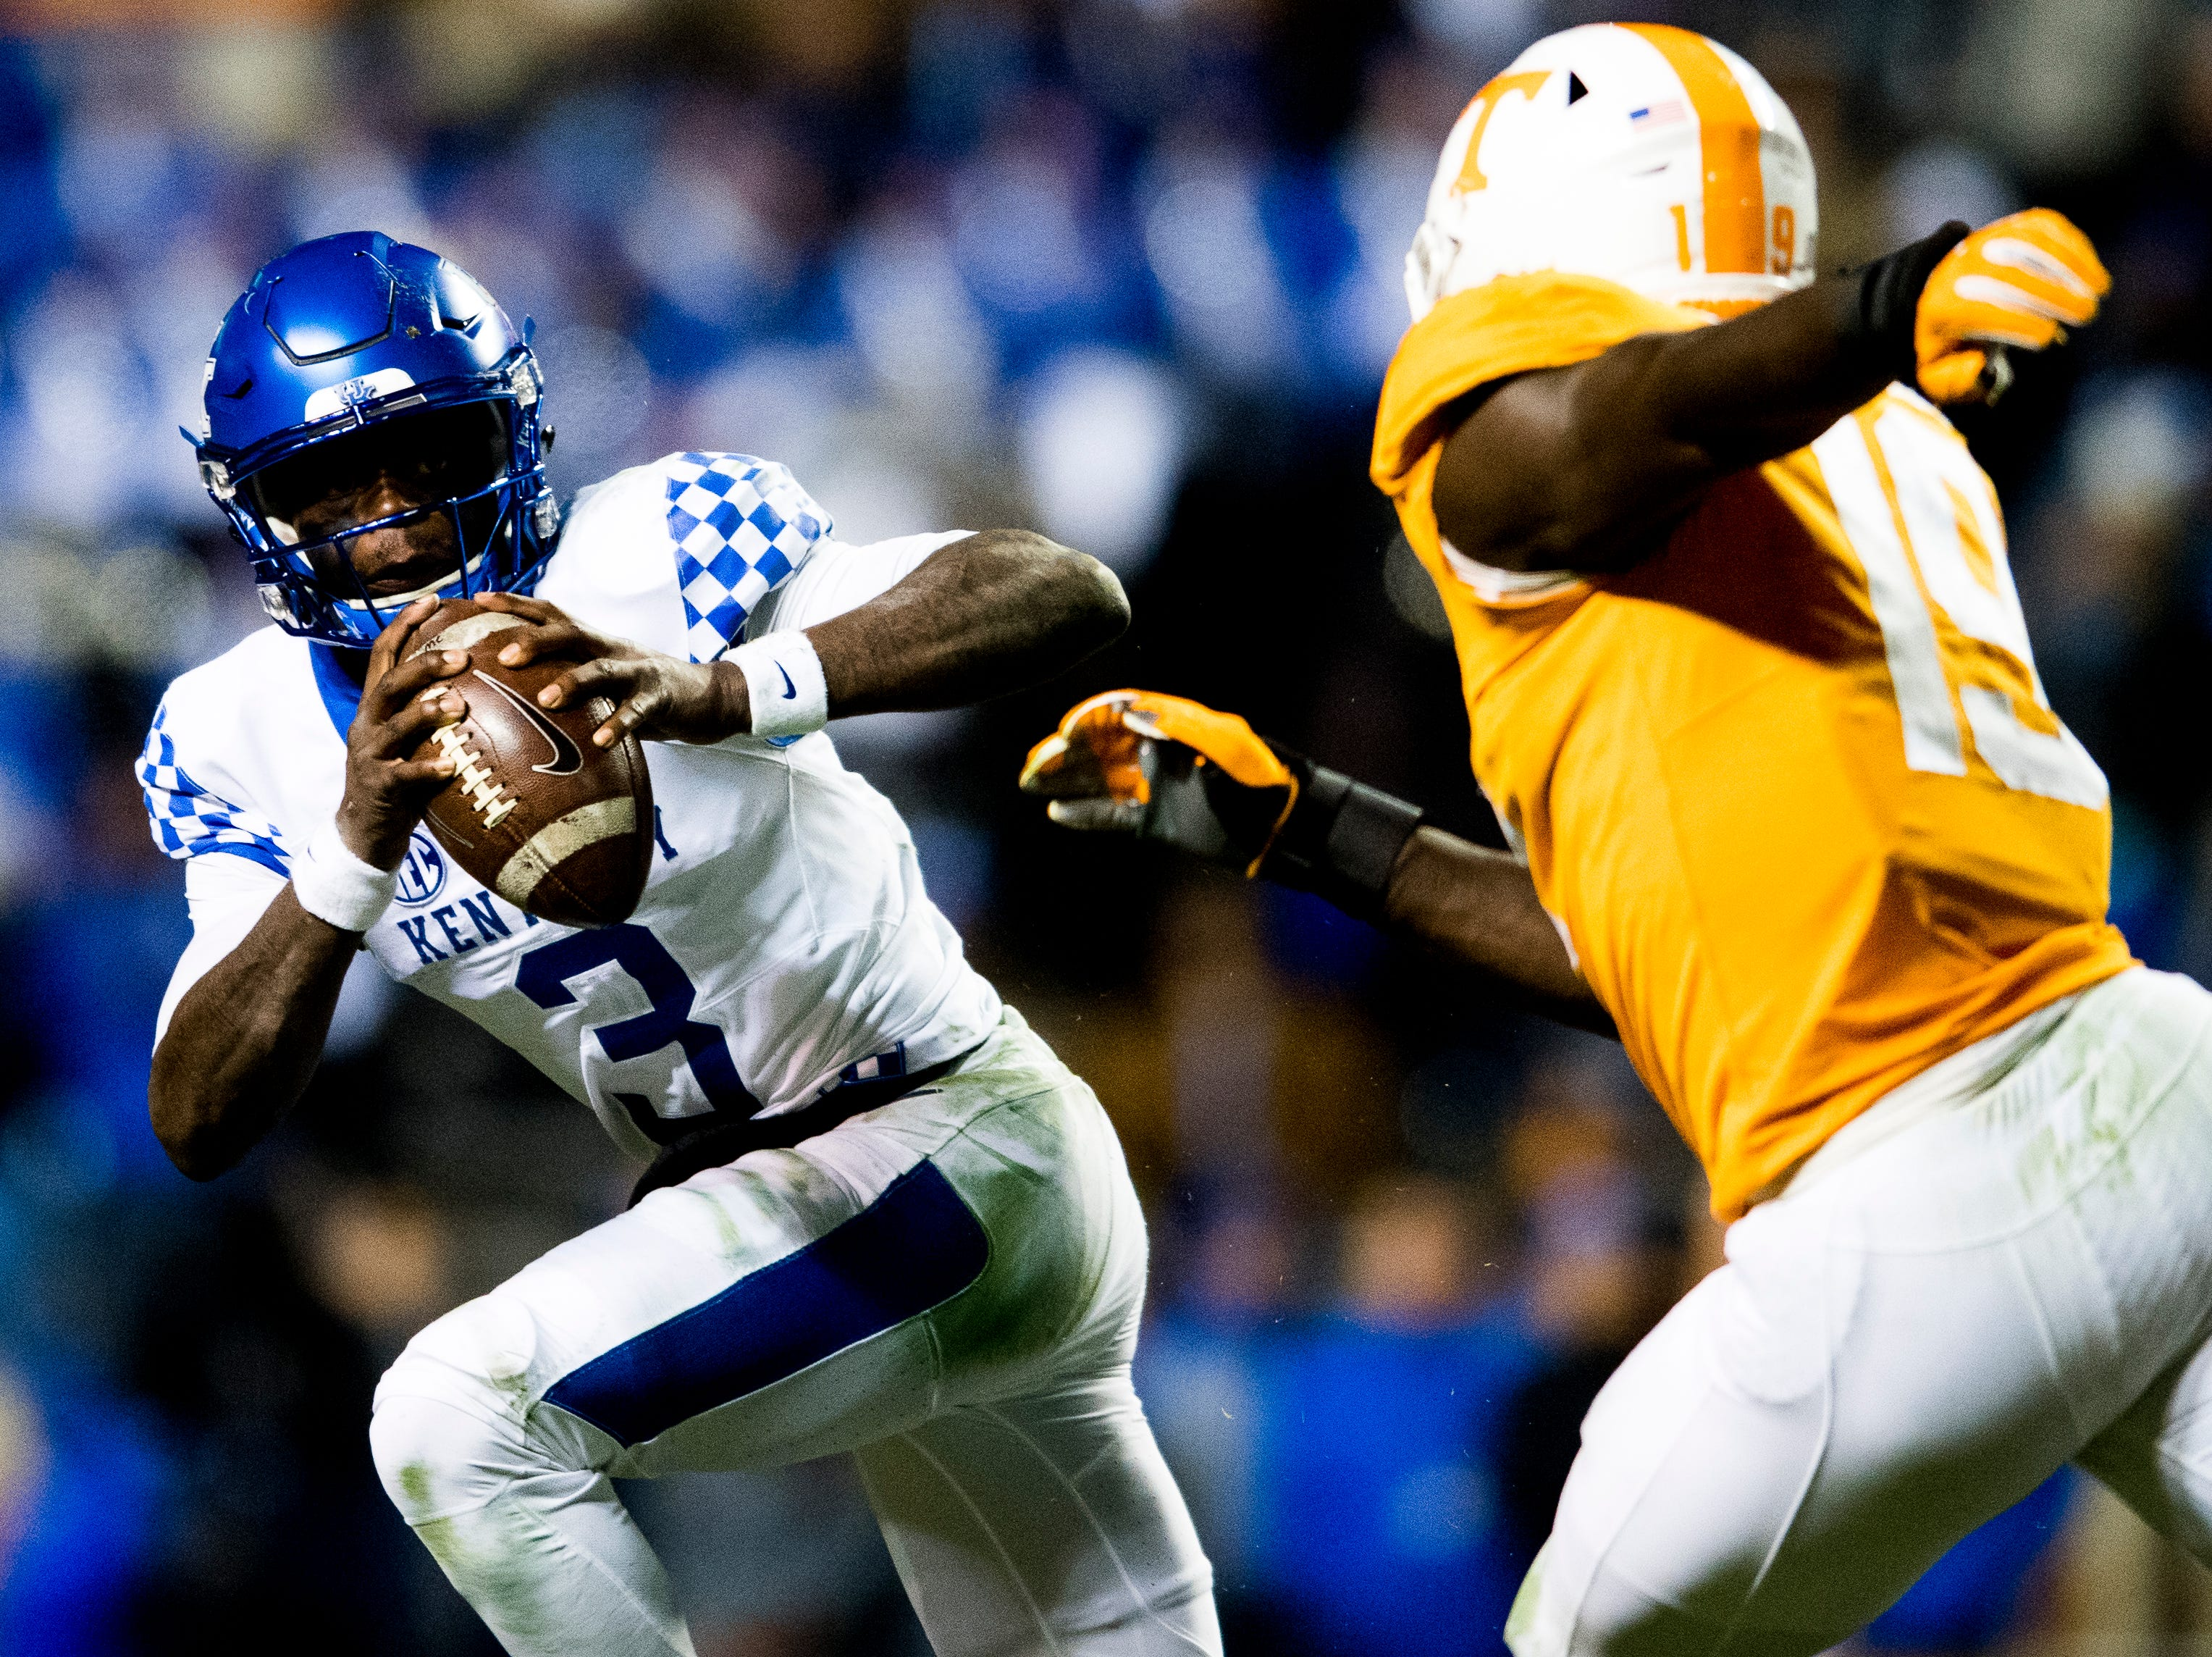 Kentucky quarterback Terry Wilson (3) looks to pass as Tennessee linebacker Darrell Taylor (19) defends during a game between Tennessee and Kentucky at Neyland Stadium in Knoxville, Tennessee on Saturday, November 10, 2018.